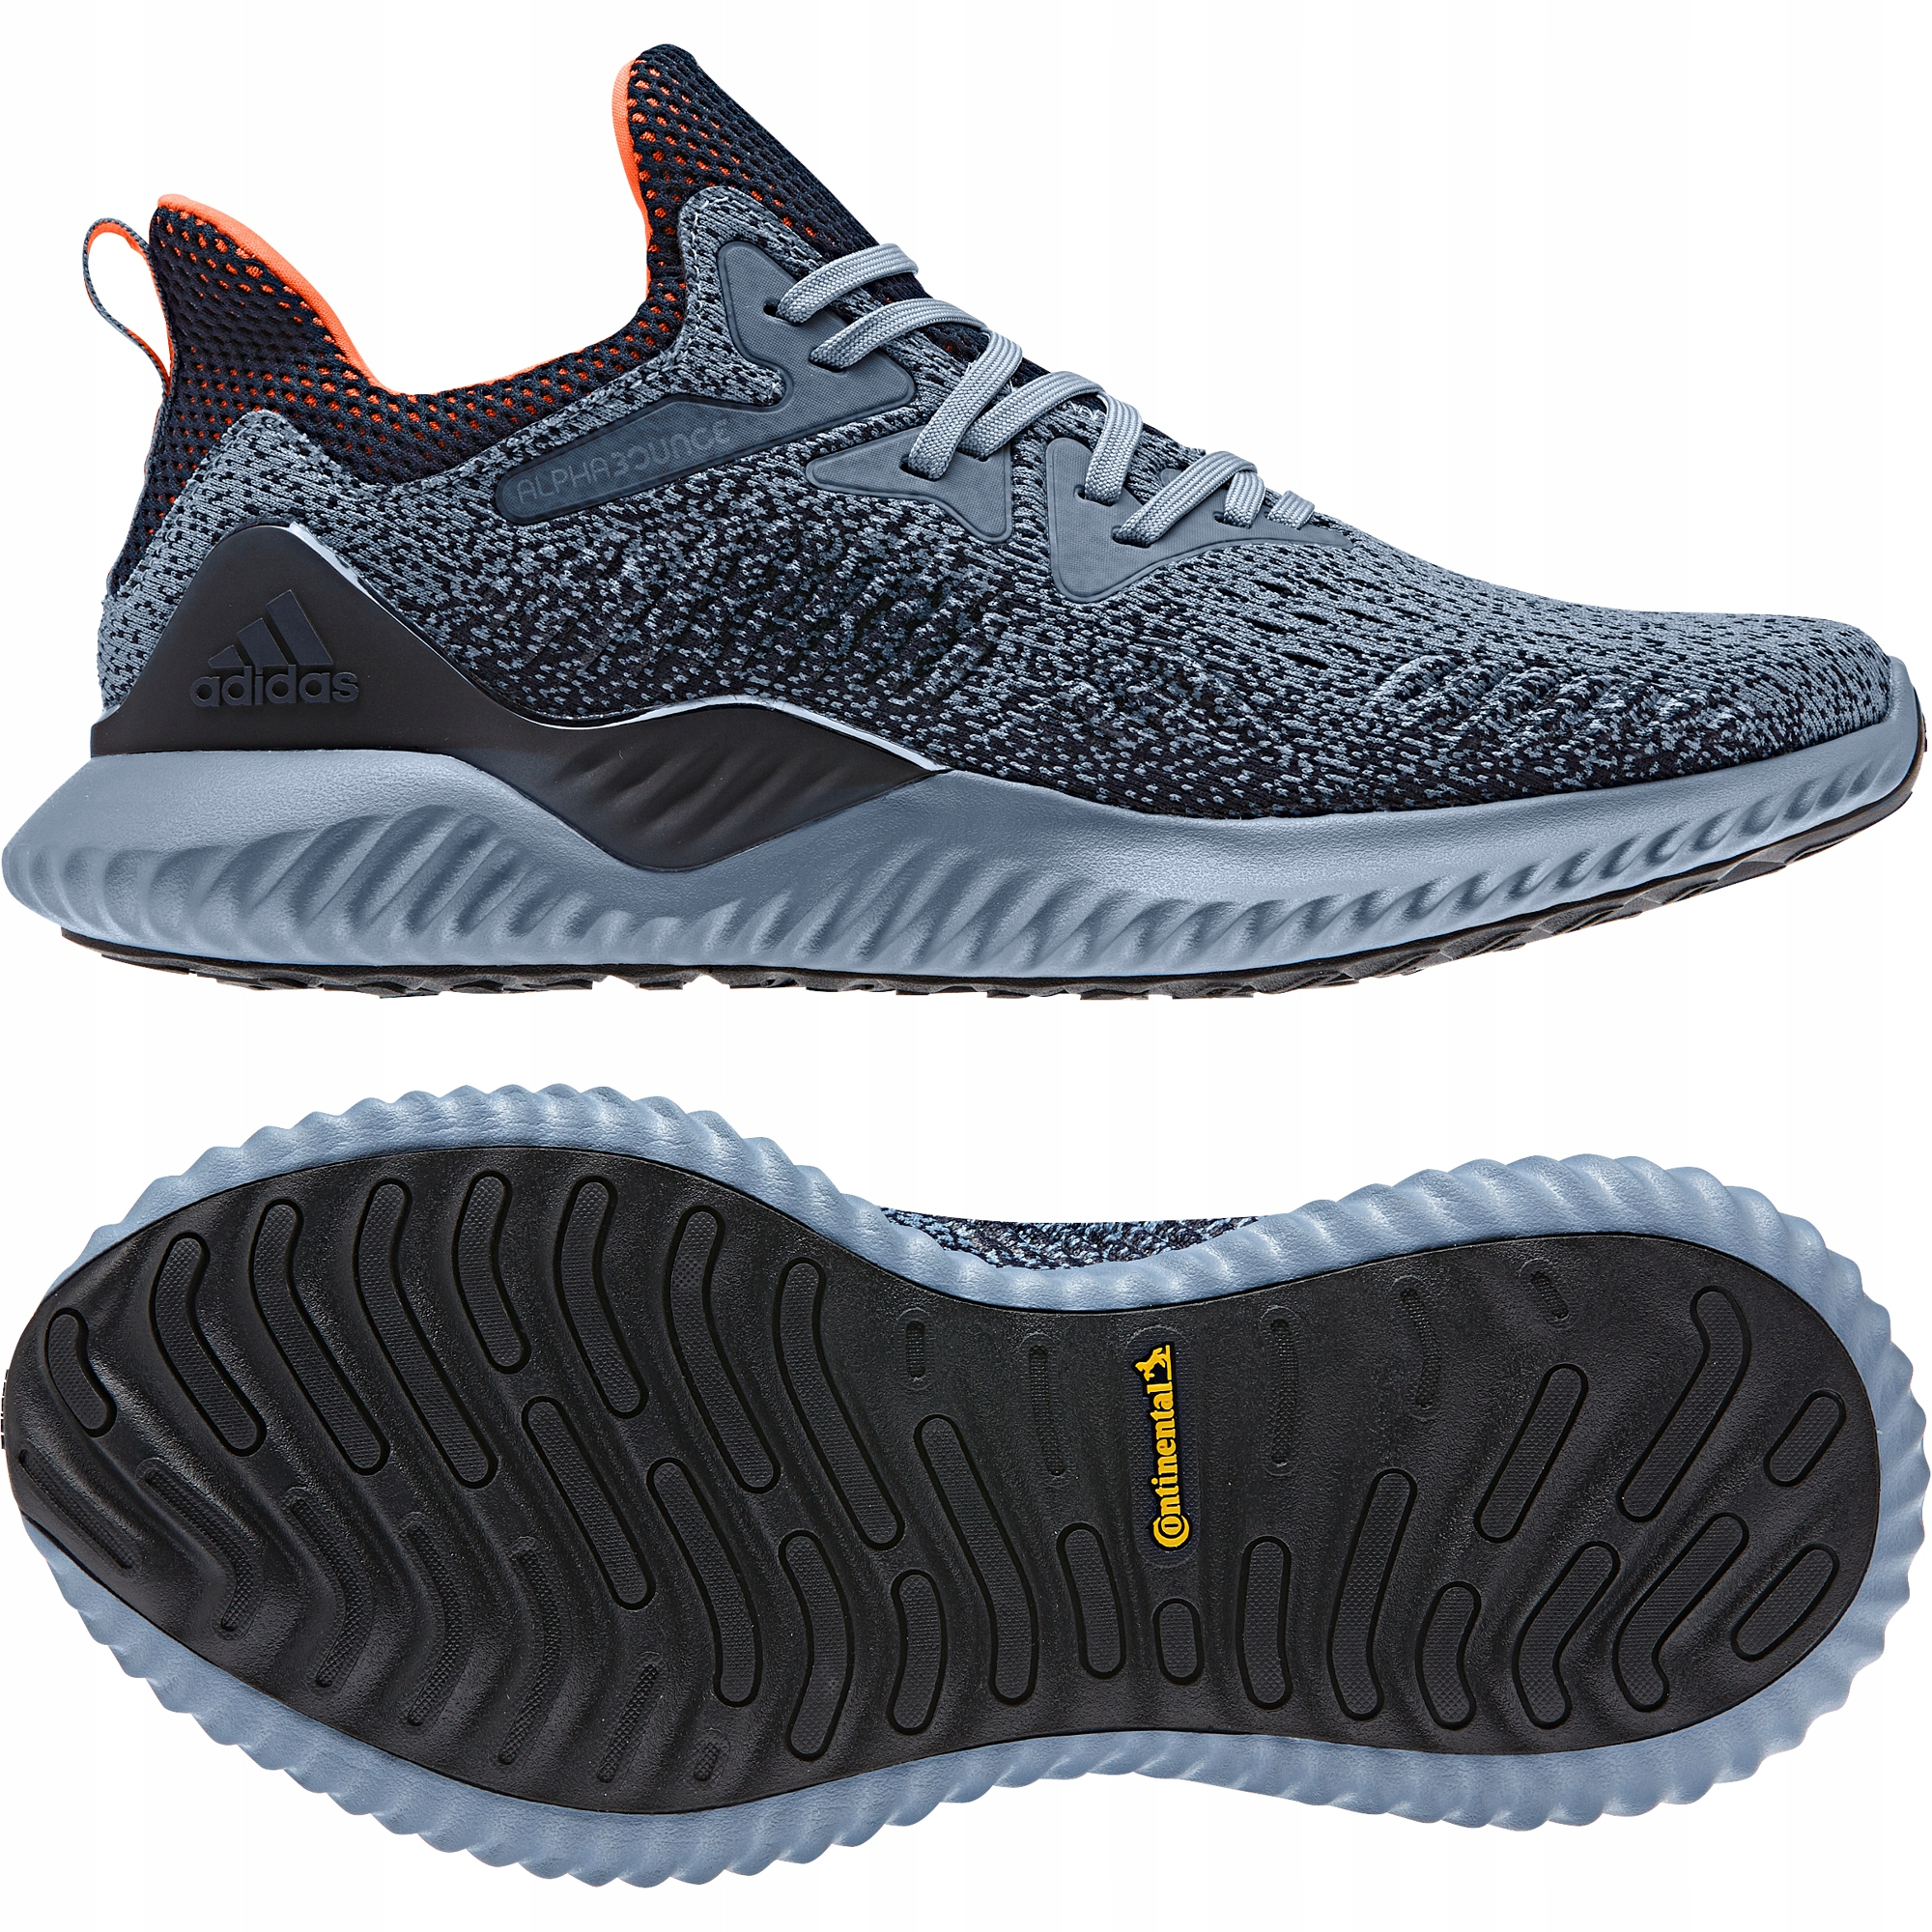 best sneakers a869e 310a7 buty męskie adidas alphabounce r 47 13 AQ0574 7519813665 - A